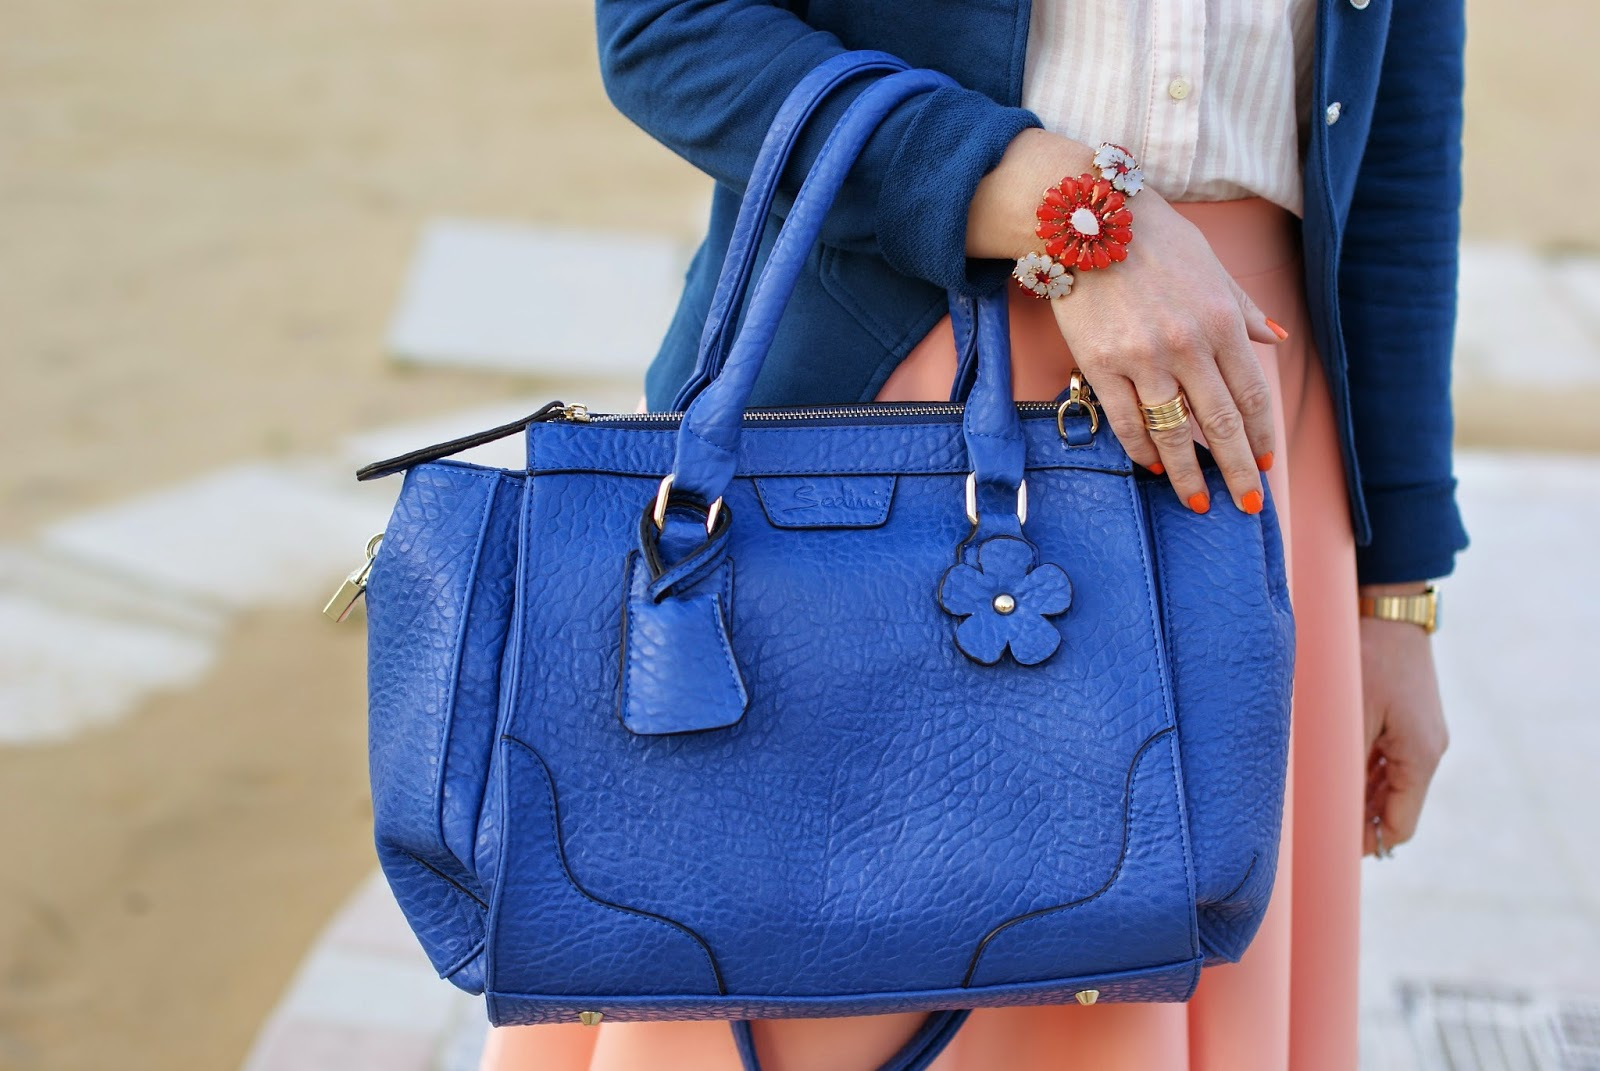 Sodini bijoux Spring Summer 2014, Sodini IT's bag bauletto blu, Fashion and Cookies, fashion blogger